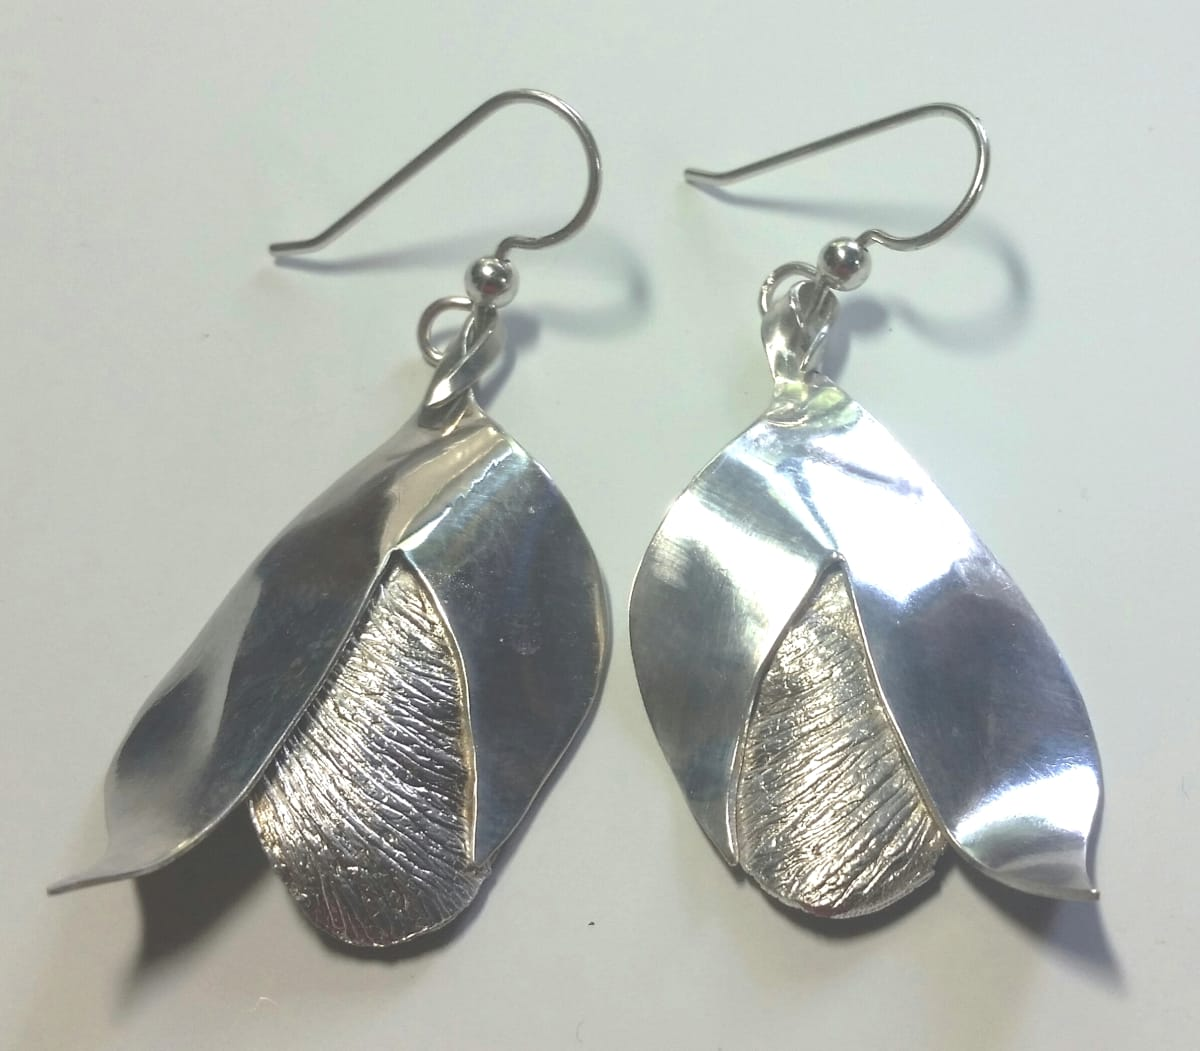 Cracking Open Earrings (small) by Georgia Weithe